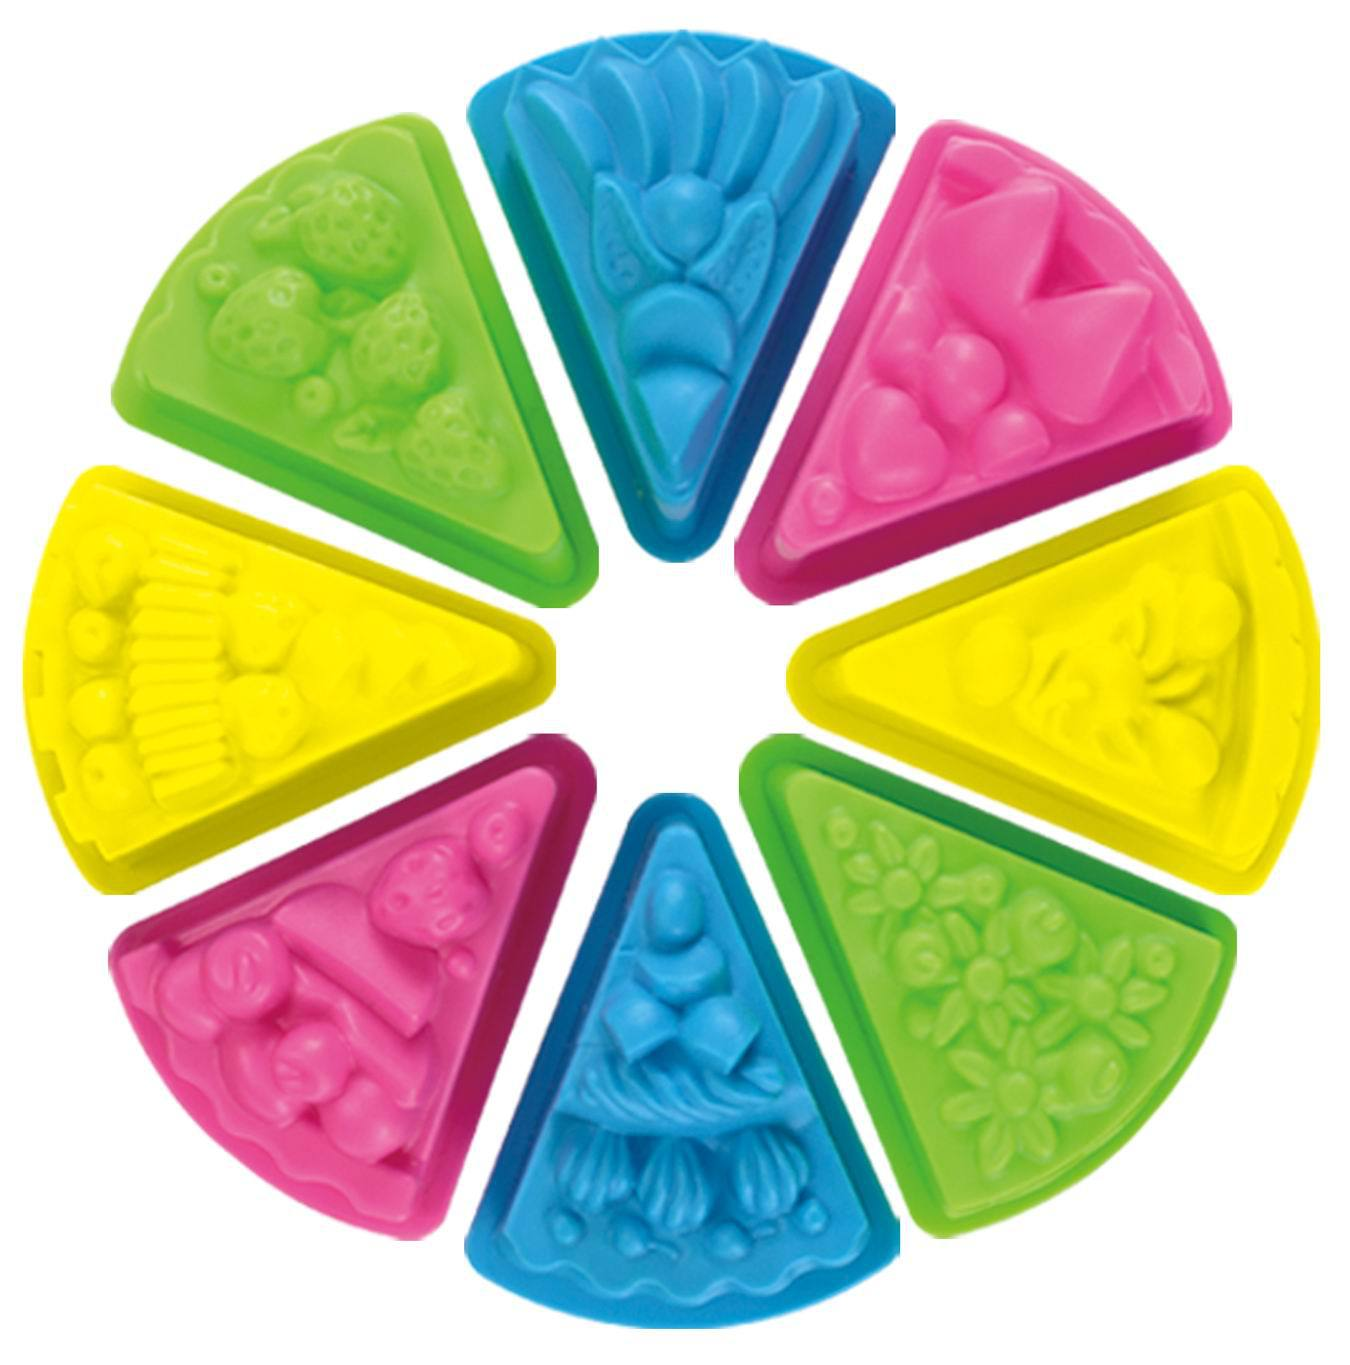 8 Piece Cake Toy Set Power Play Sand Mold Plastic Colorful Beach Toys For Children Kids Cake Mold Summer Water Gift